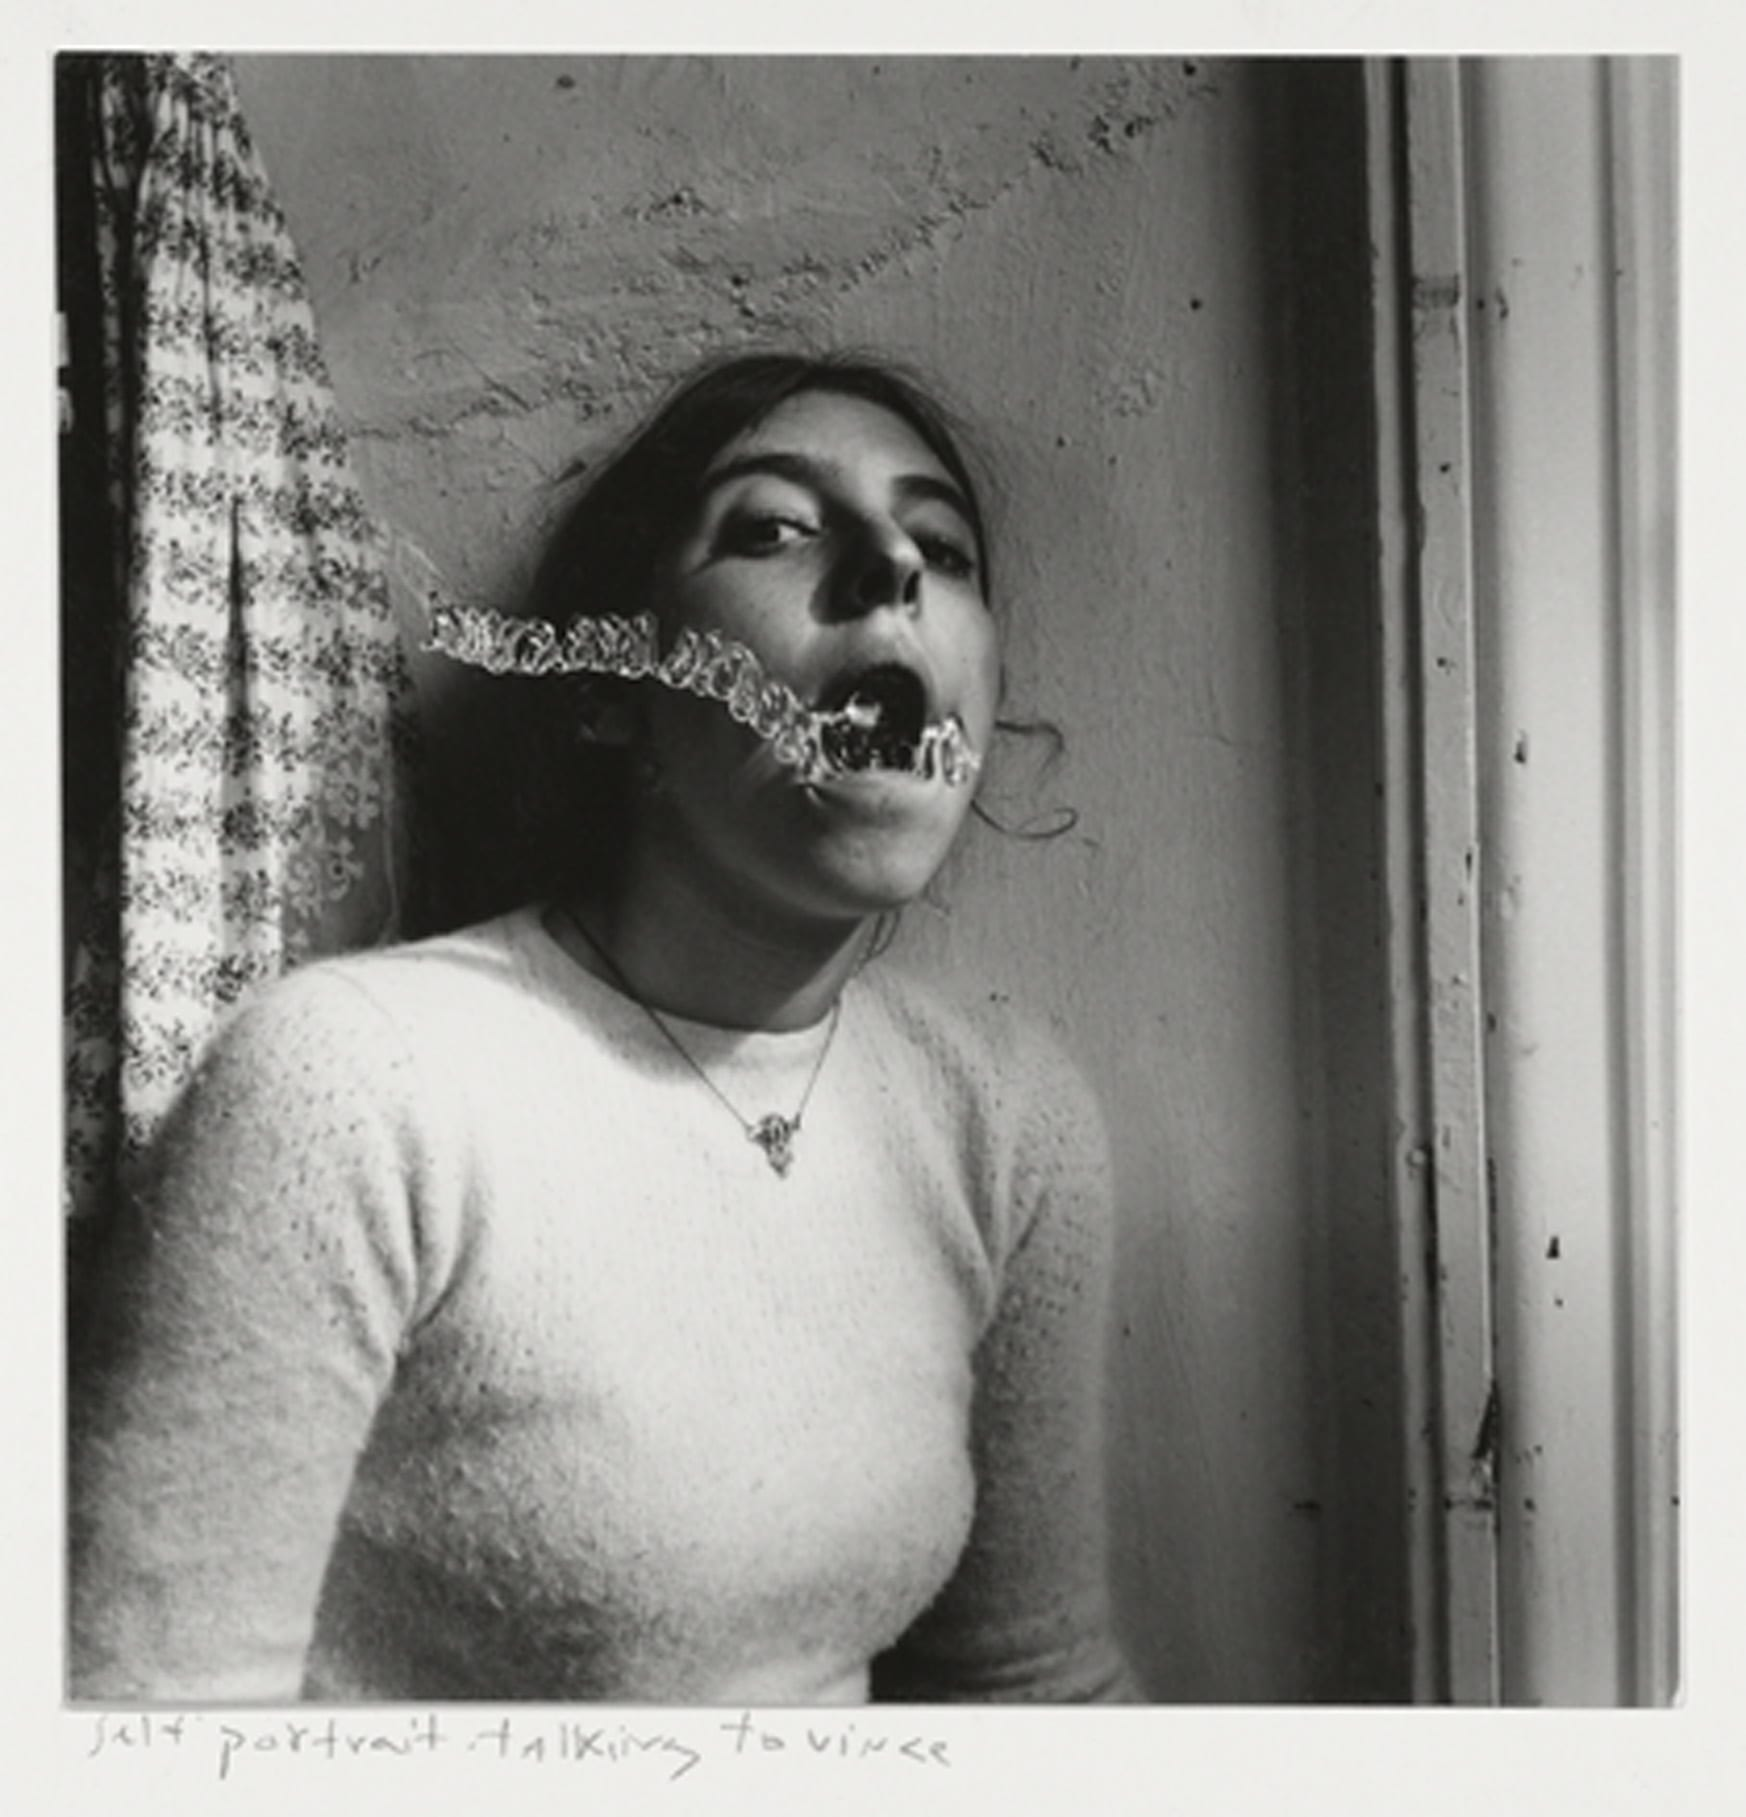 Francesca Woodman, Self-portrait talking to Vince, Providence, Rhode Island, 1977 © George and Betty Woodman NB: No toning, cropping, enlarging, or overprinting with text allowed.